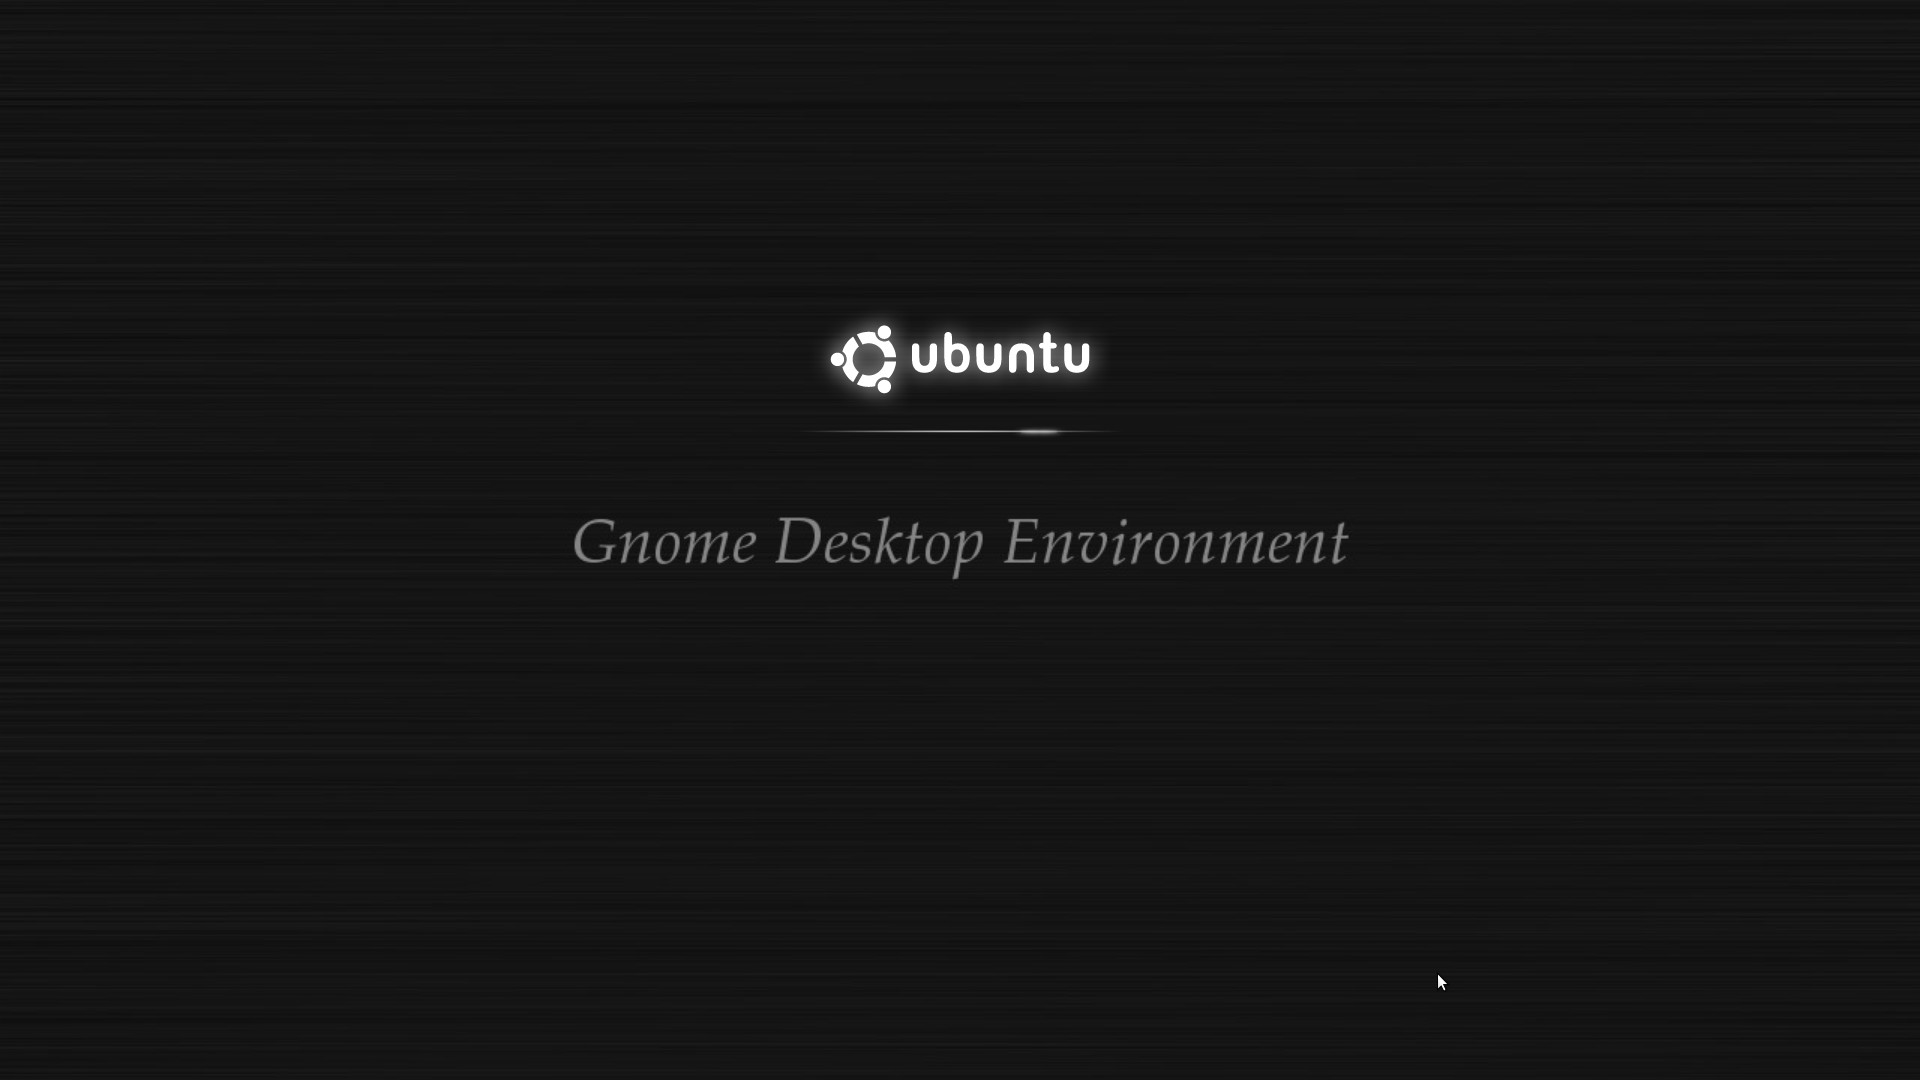 Full HDQ Cover Photos: Gnome, 1920x1080